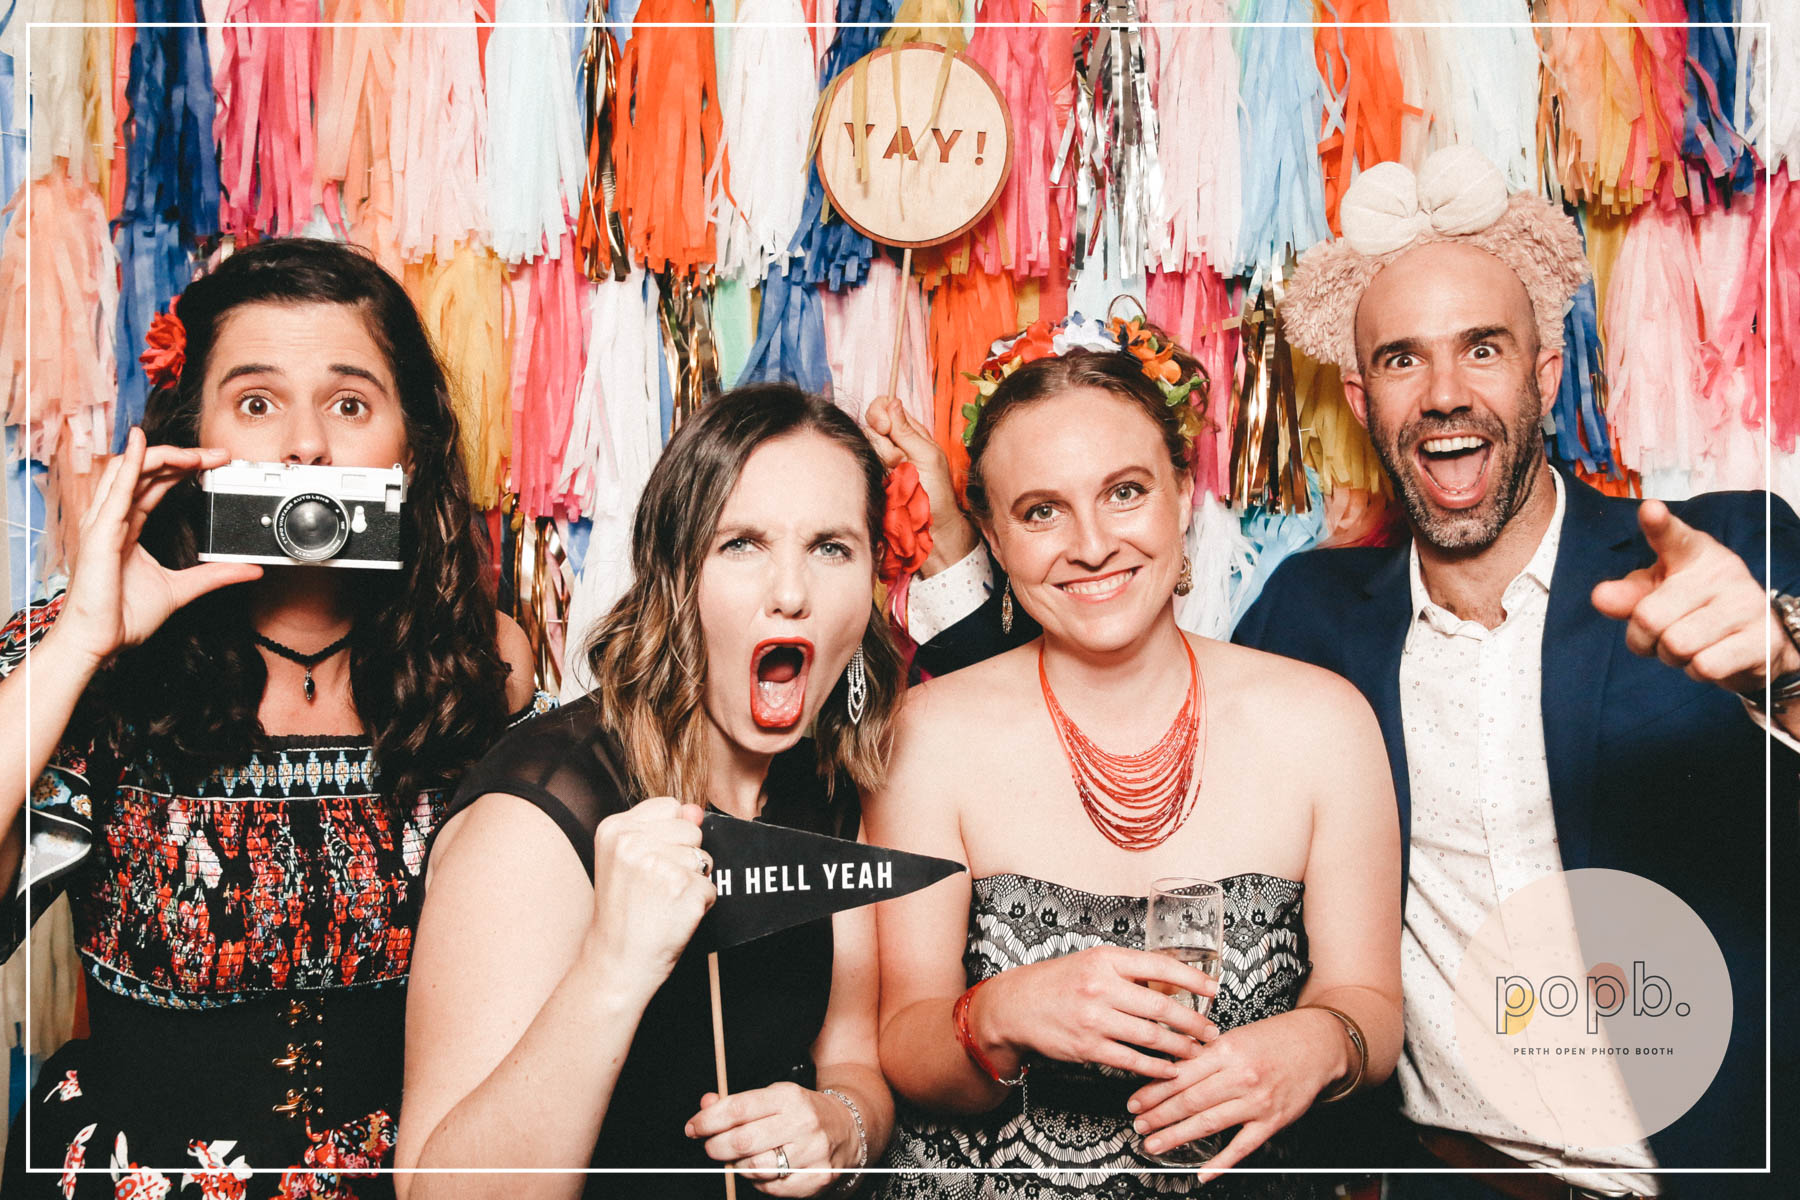 PTA Annual Arrows 2019 - pASSWORD: PROVIDED ON THE night- ALL LOWERCASE -